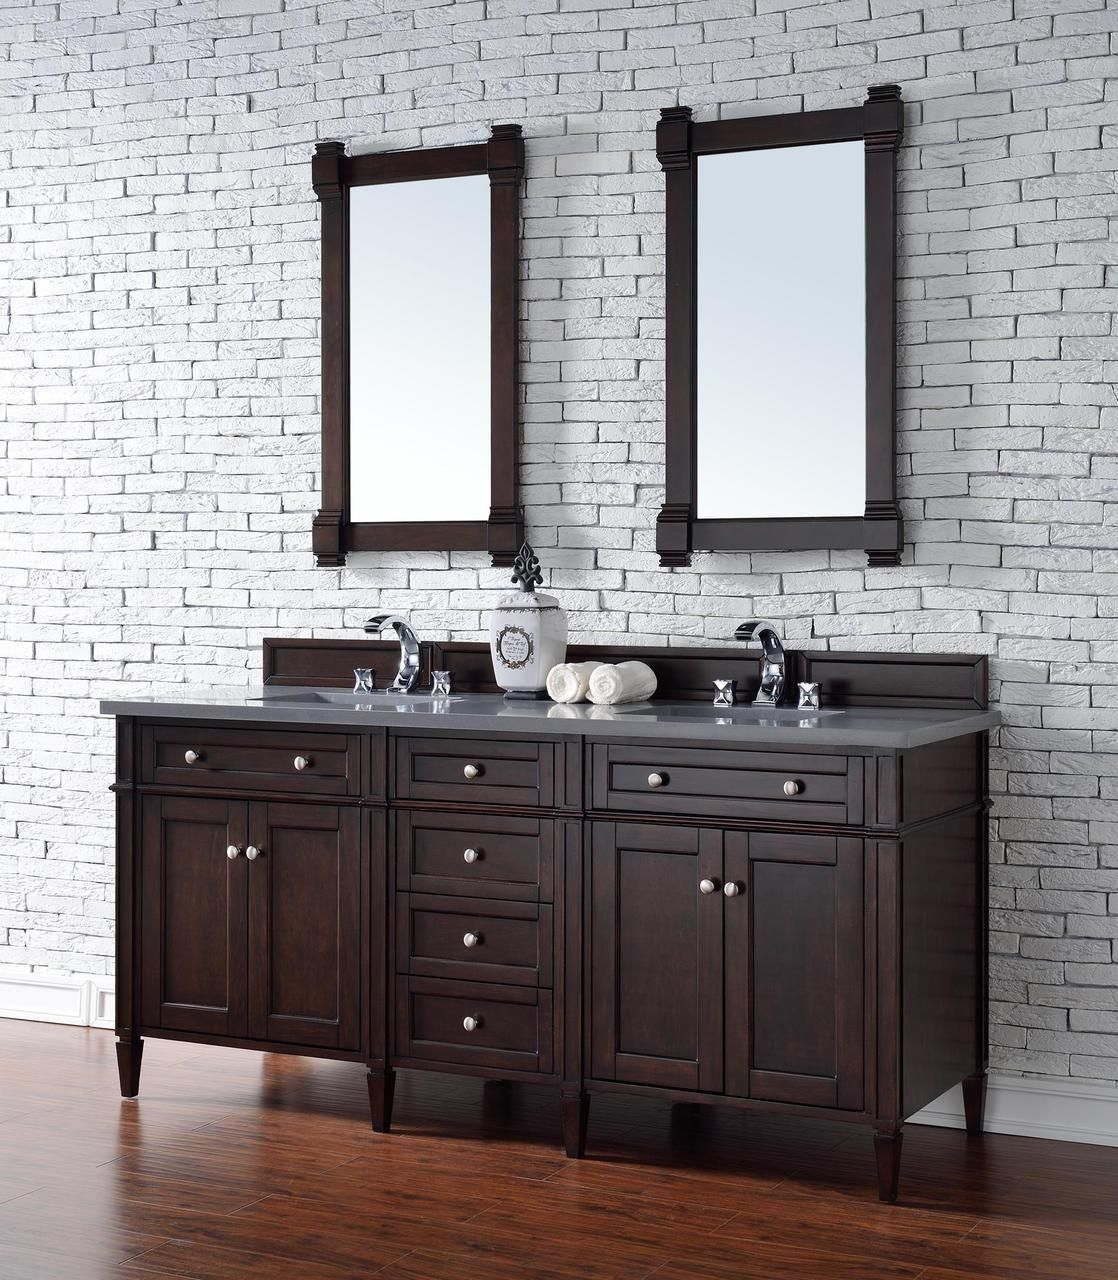 Contemporary 72 Inch Double Sink Bathroom Vanity Burnished Cool 72 Inch Bathroom Vanity Double Sink Design Inspiration